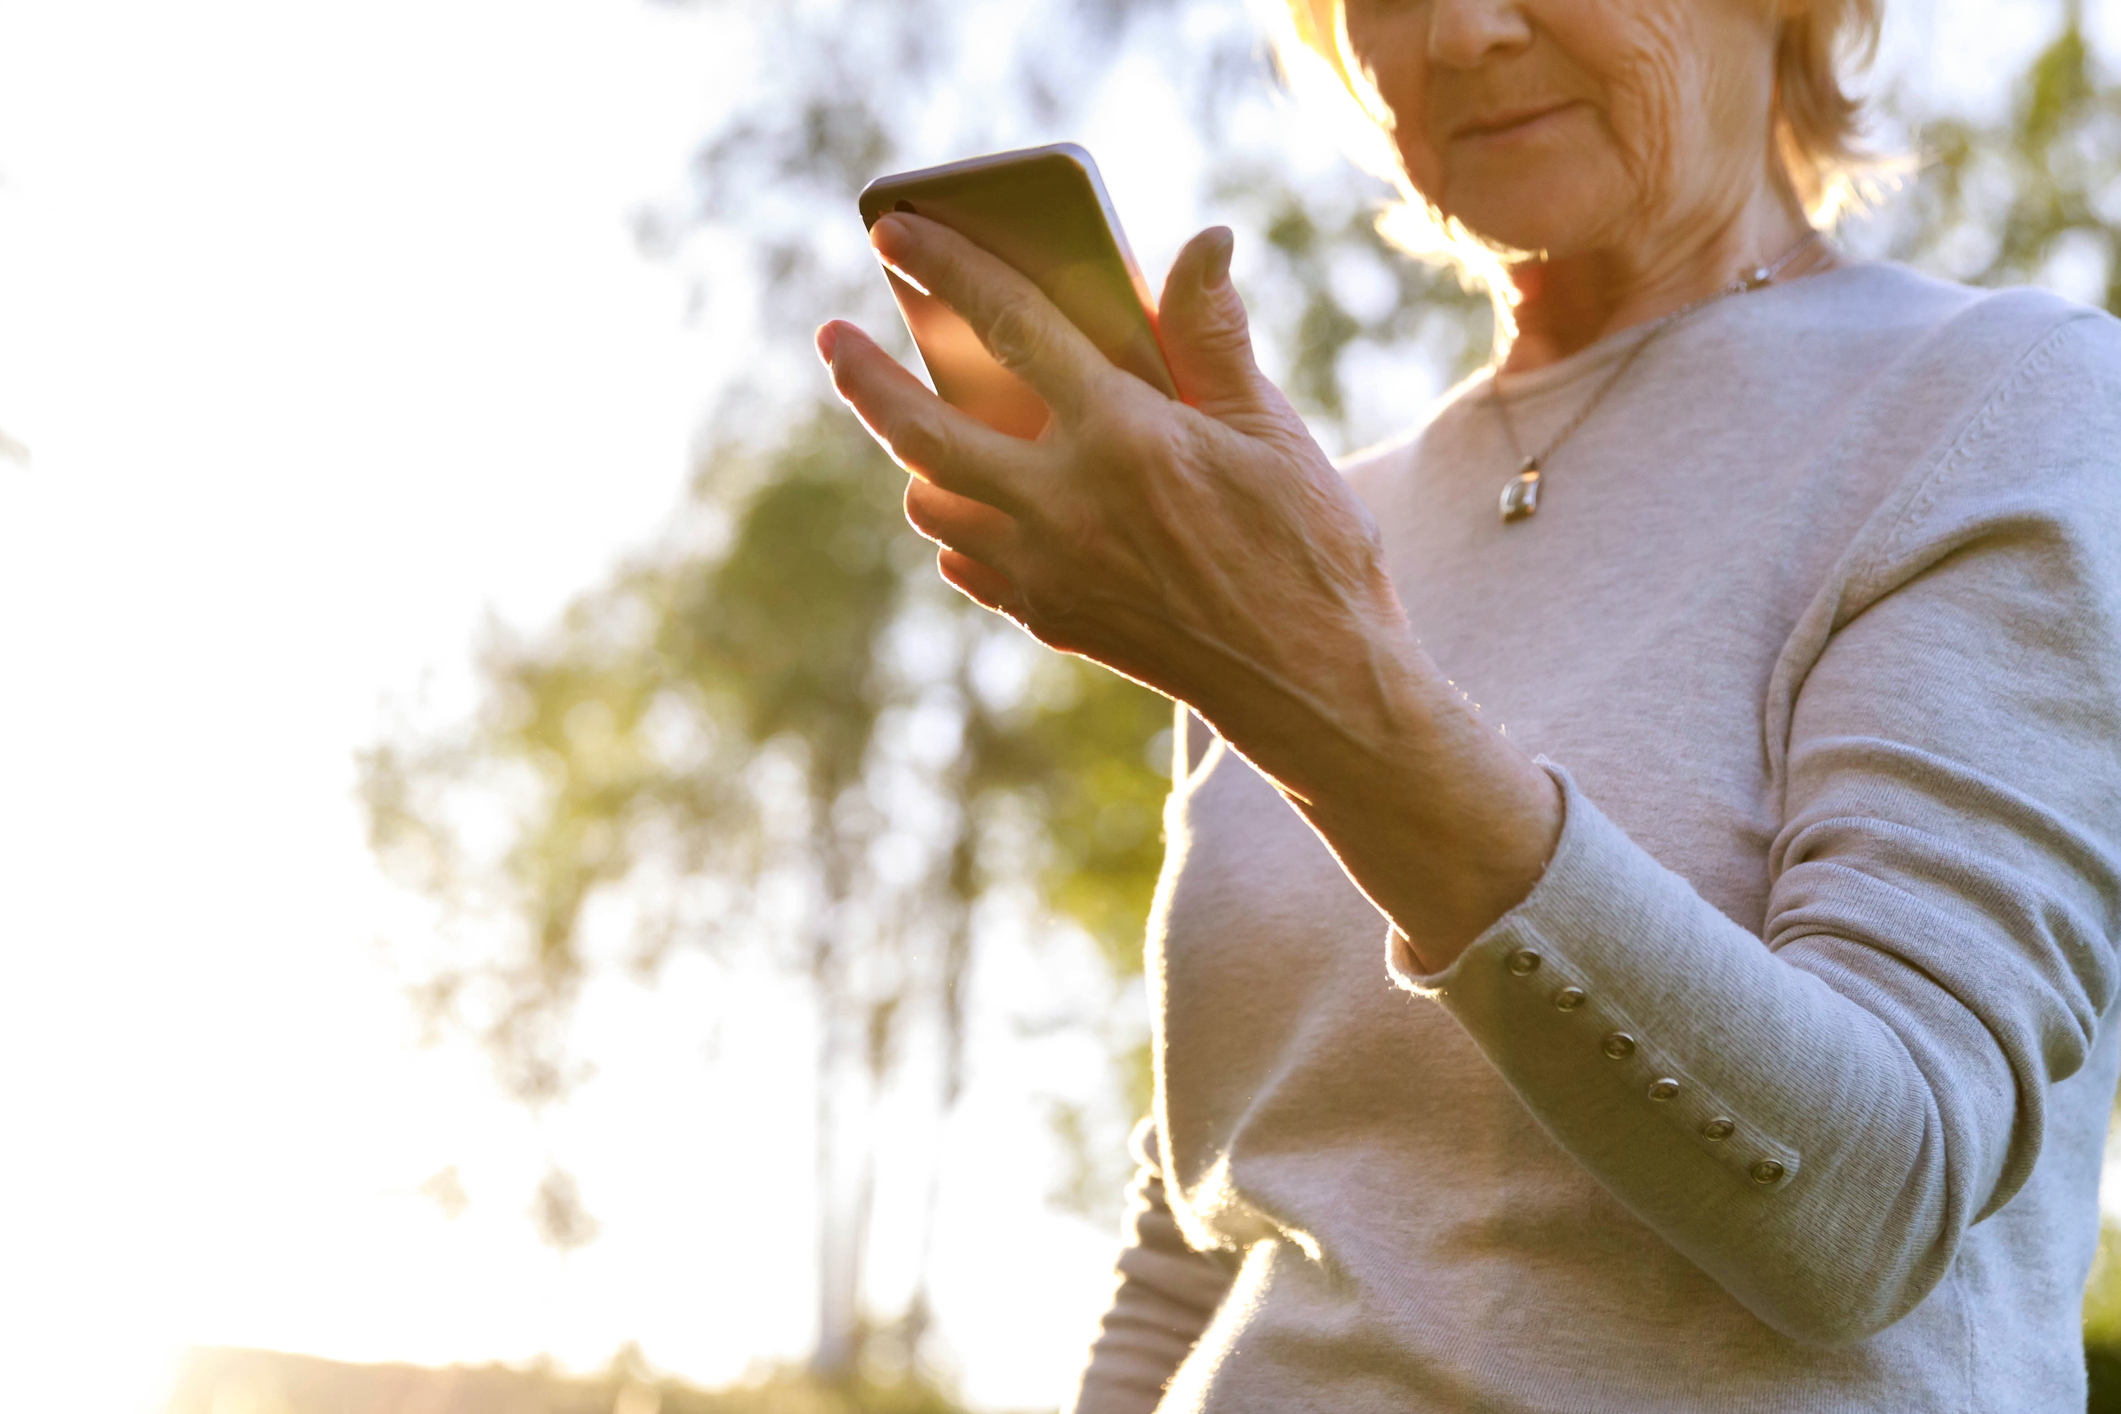 Elderly woman is holding a phone reading text